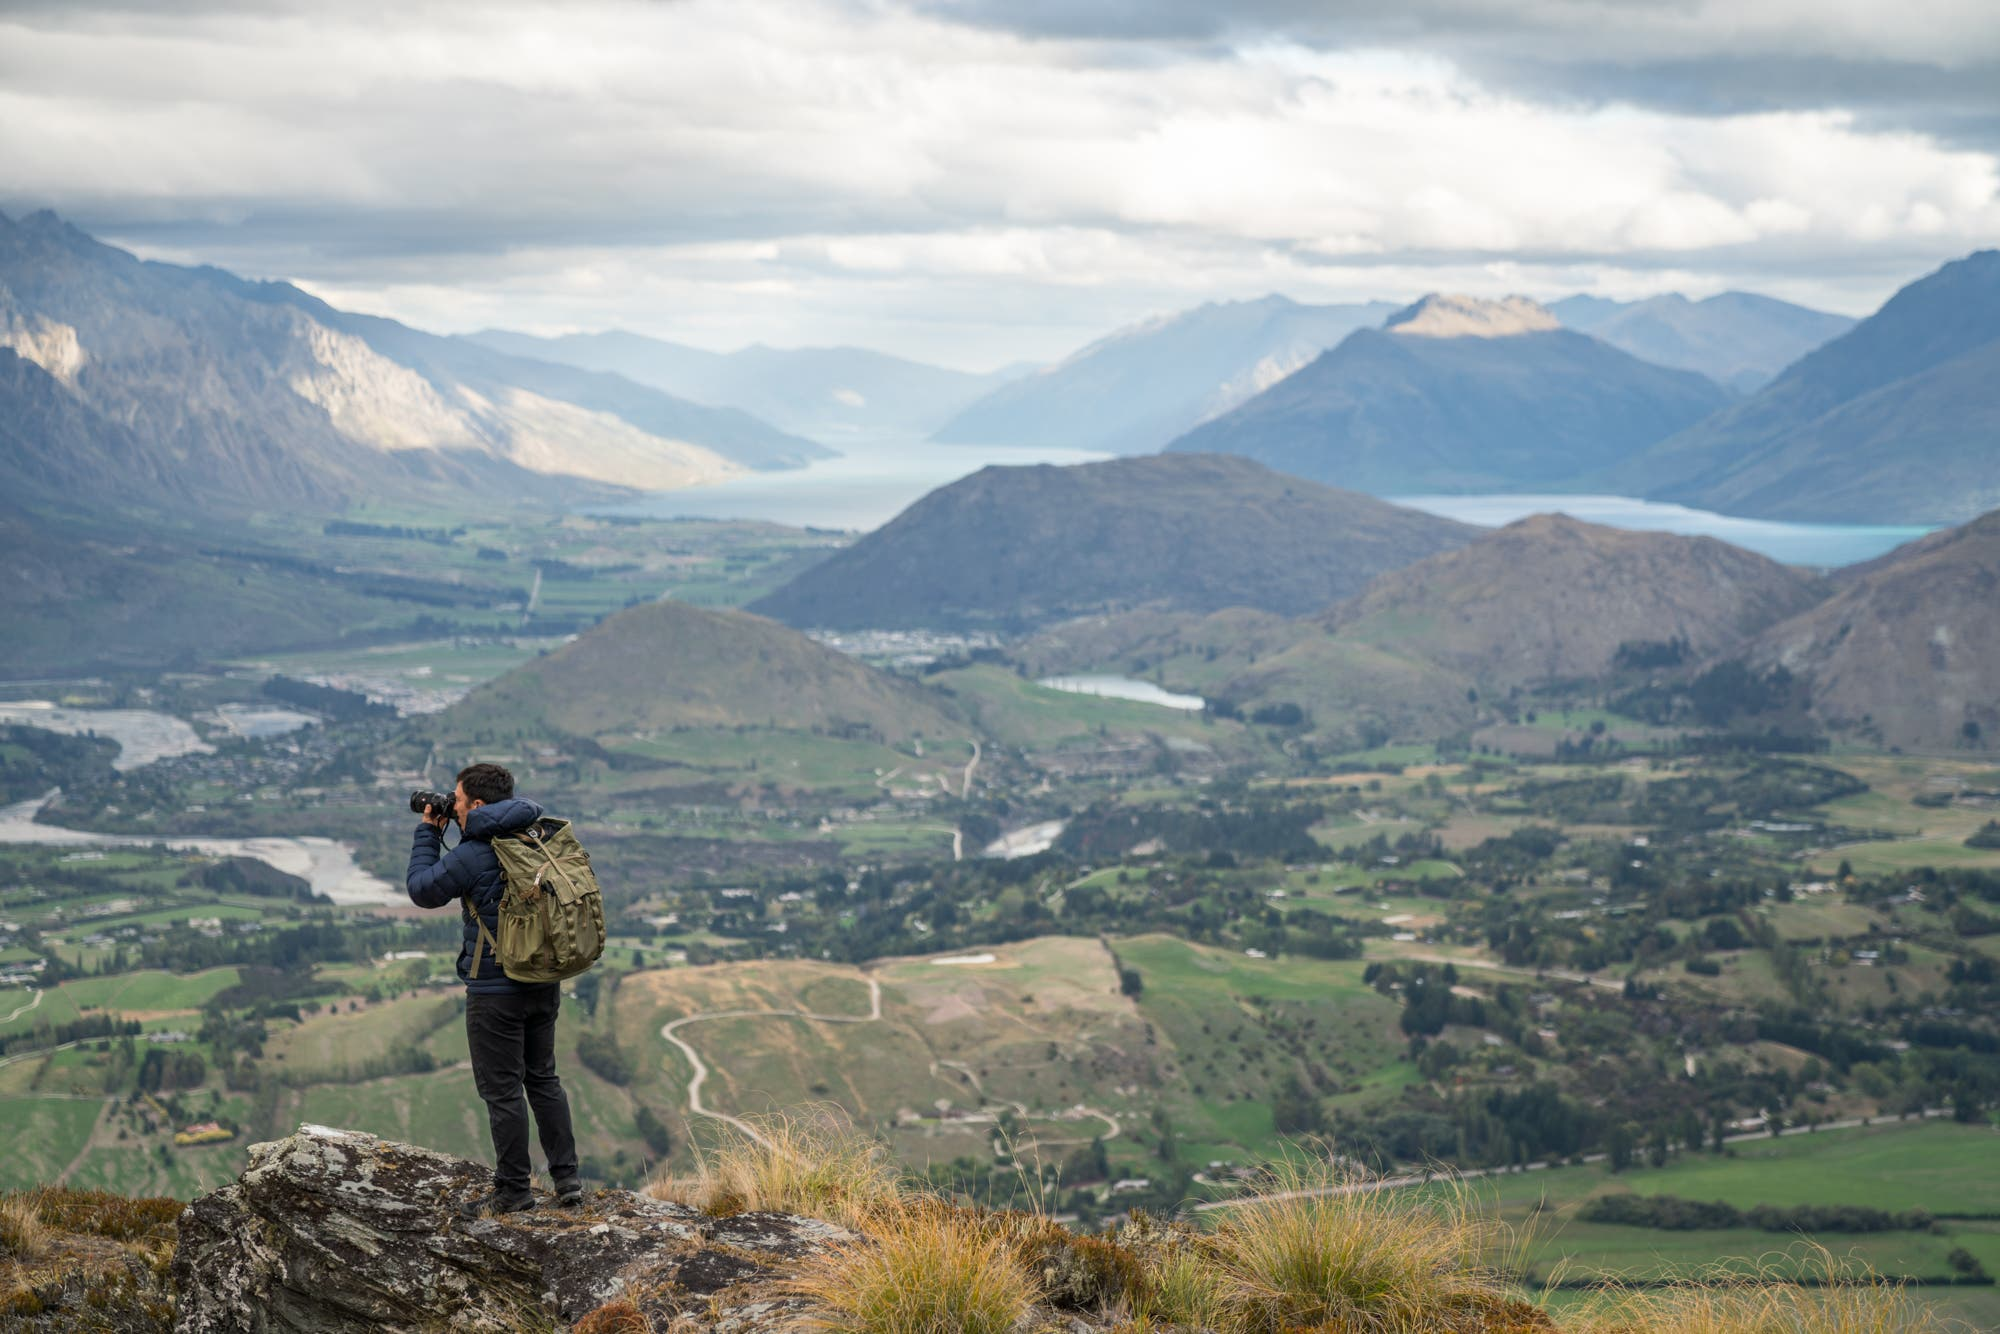 The Mountainsmith TanuckLITE 40 Camera Backpack was Designed with Chris Burkard